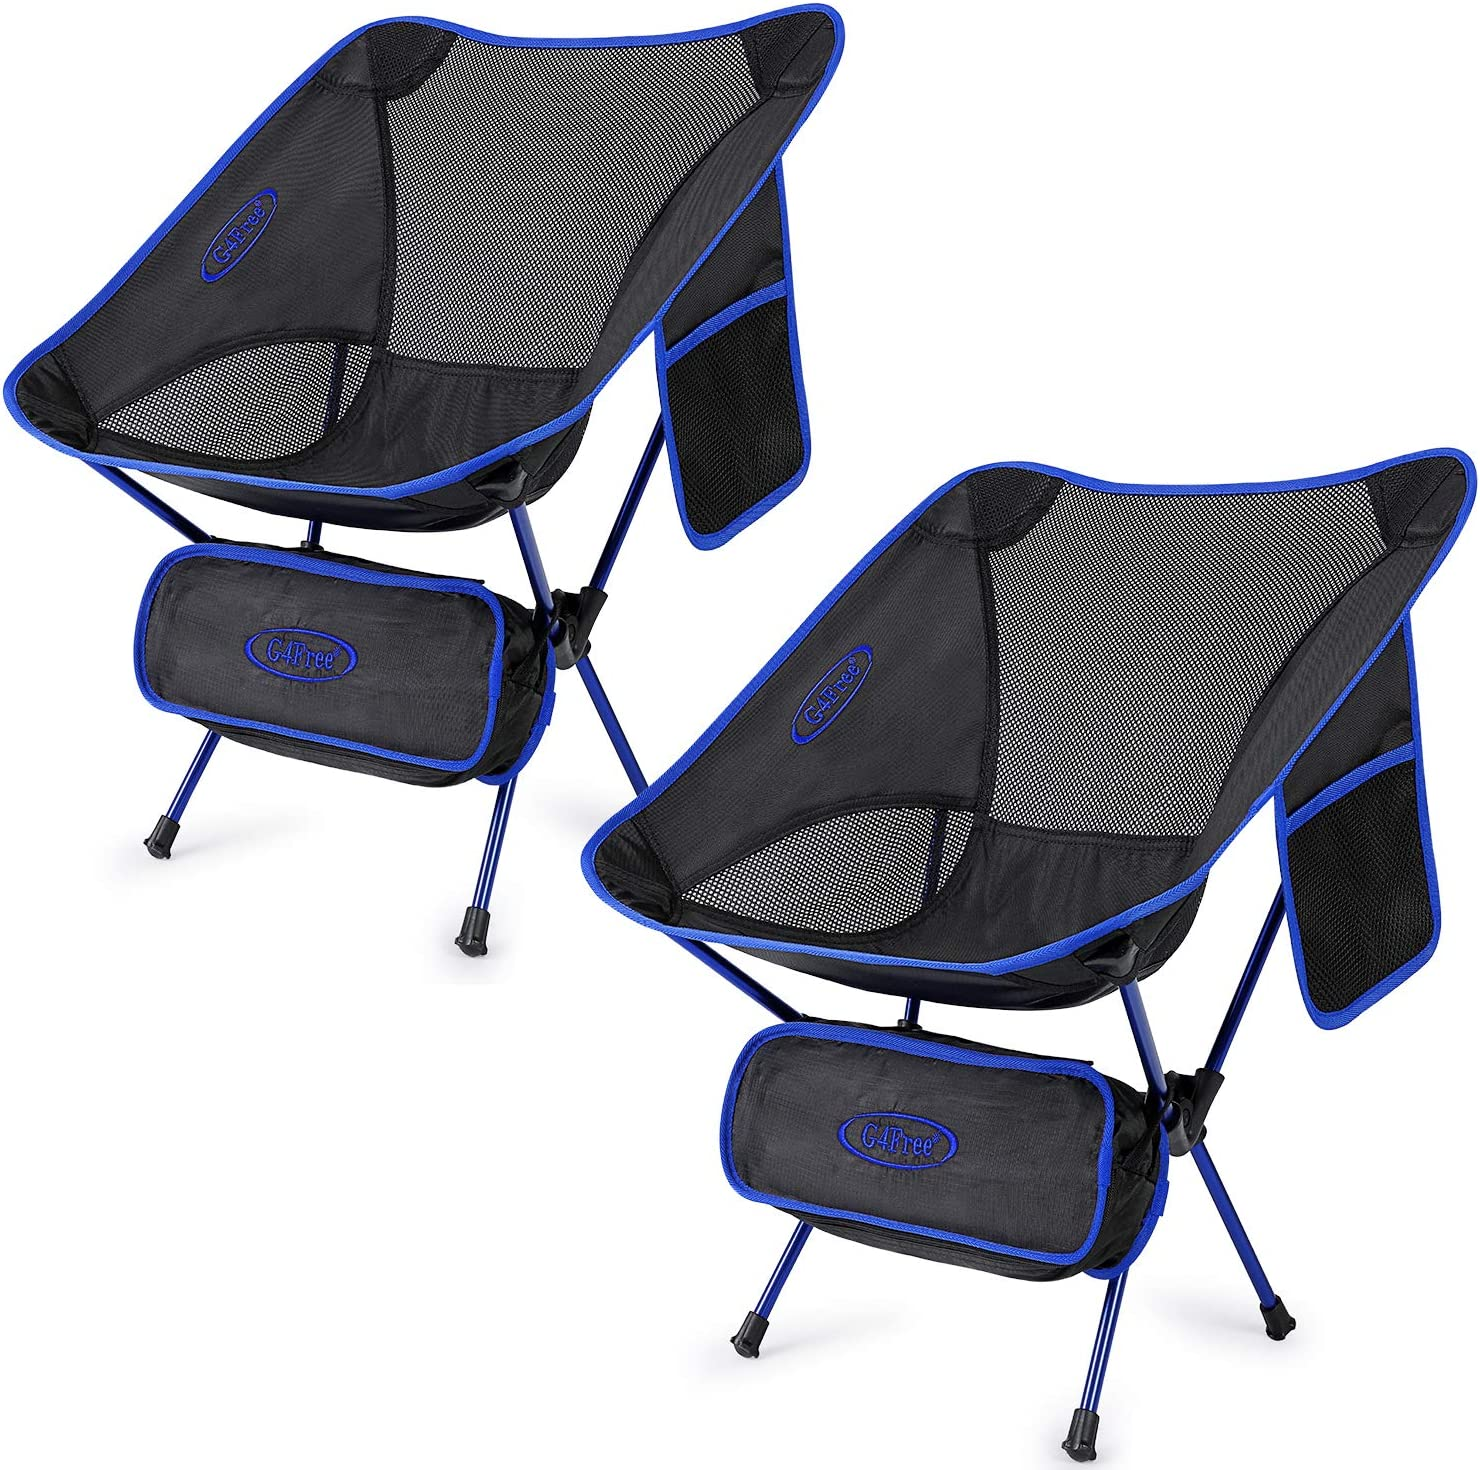 Limited time for free shipping G4Free Upgraded 2 Pack Ultralight Portabl gift Camping Chair Folding